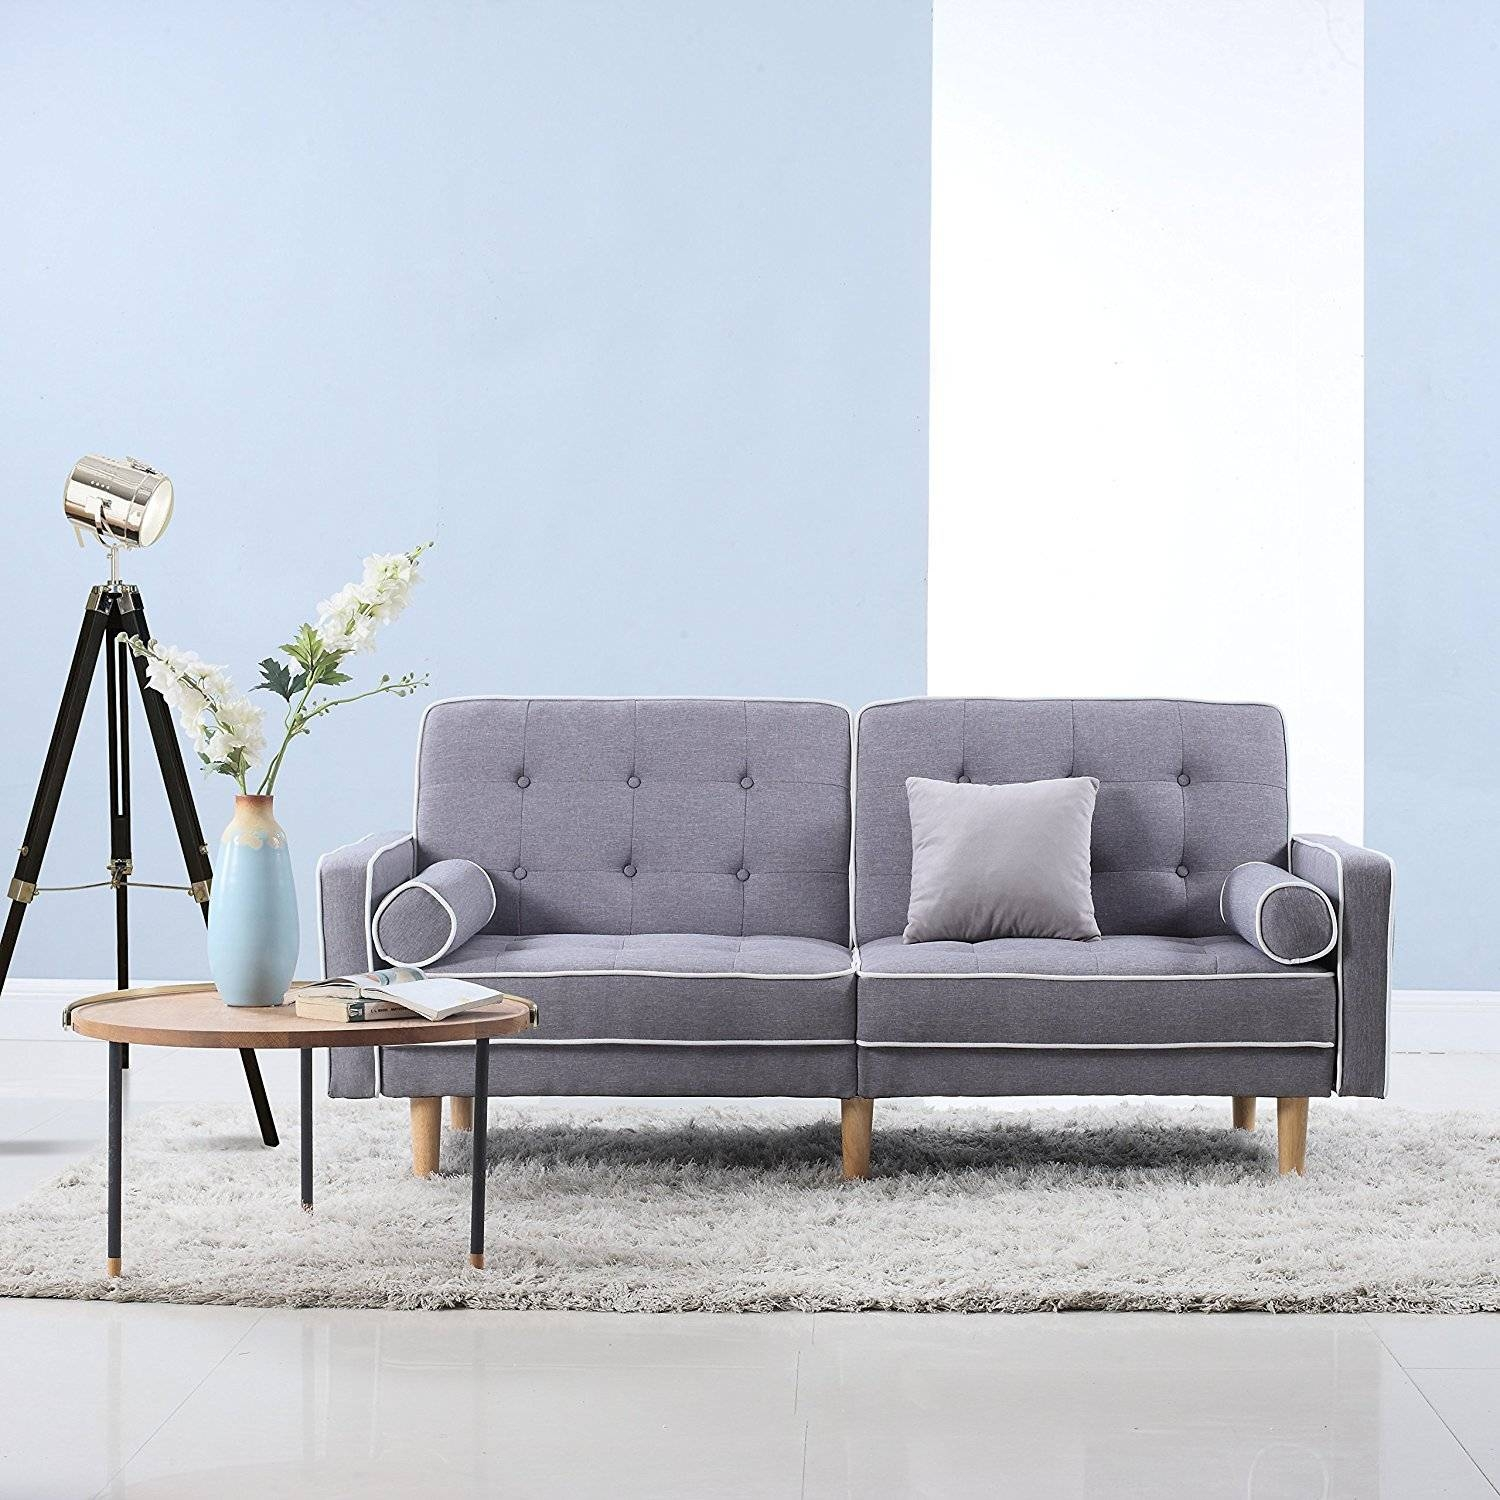 Furniture: Modern Tufted Sofa For Extra Aesthetic Appeal — Emdca for Seafoam Green Couches (Image 8 of 15)